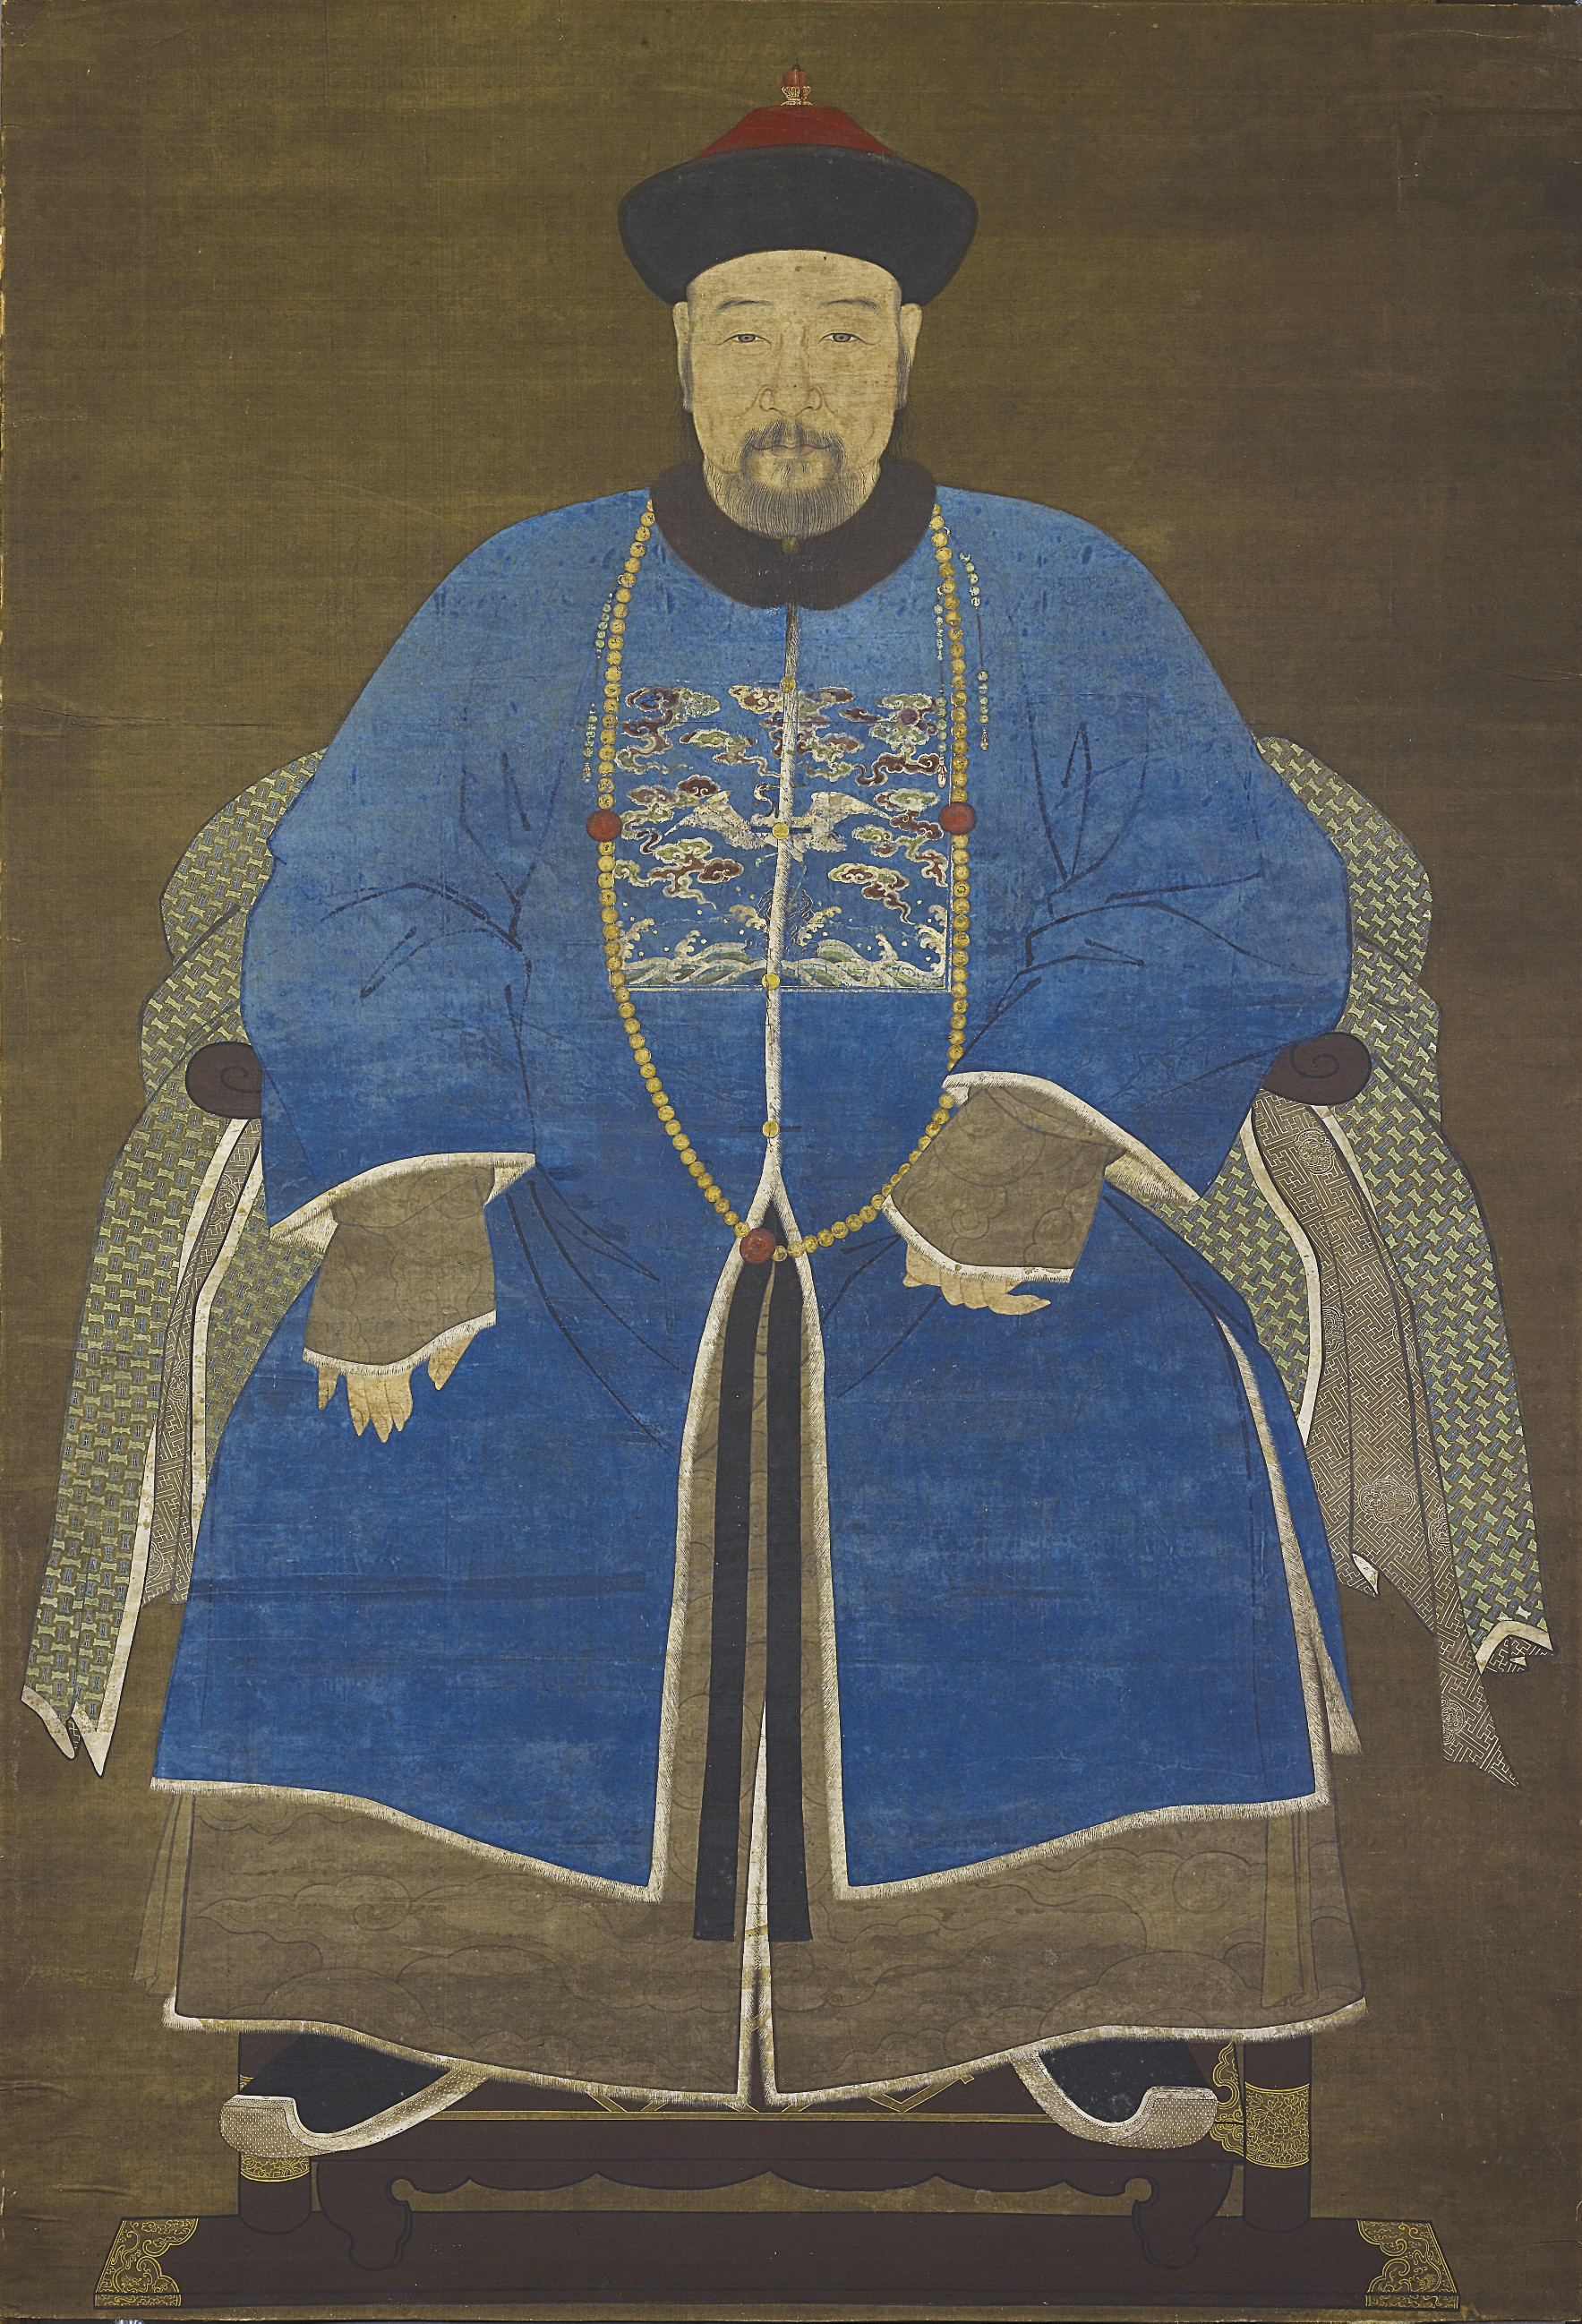 A PORTRAIT OF A MANDARIN OF TH